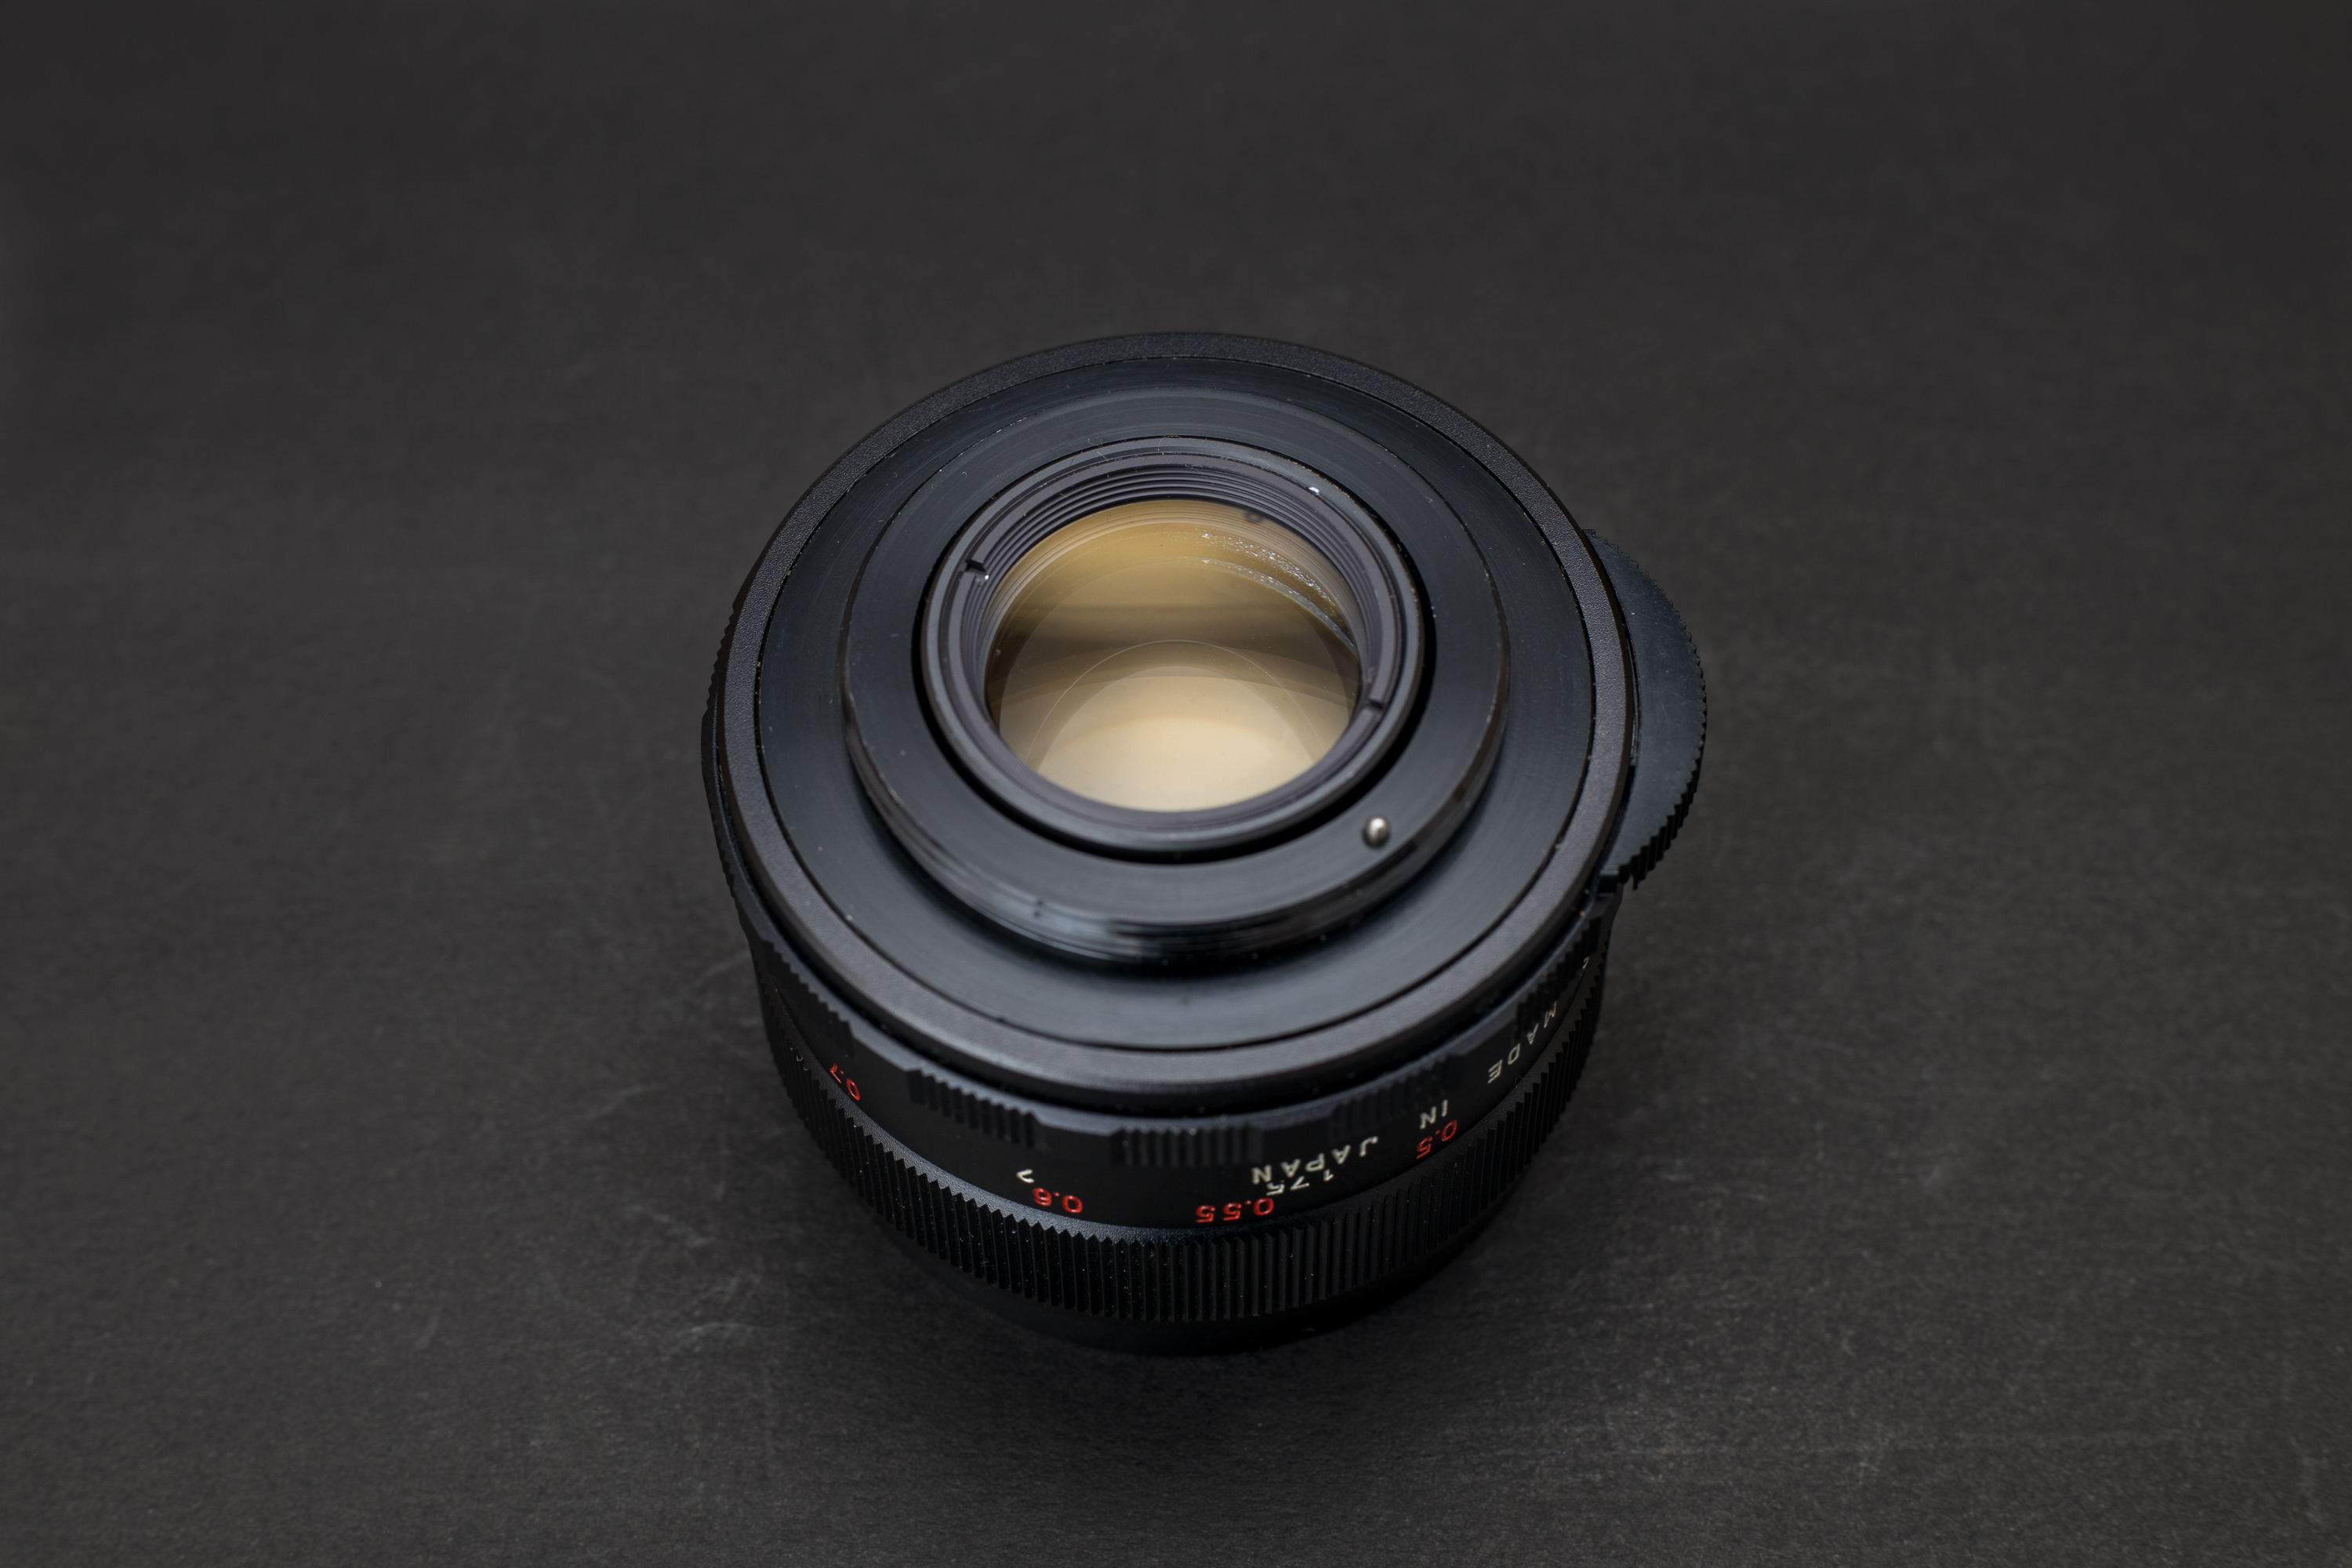 Mamiya Sekor 50mm f2 M42 Lens - Rear view